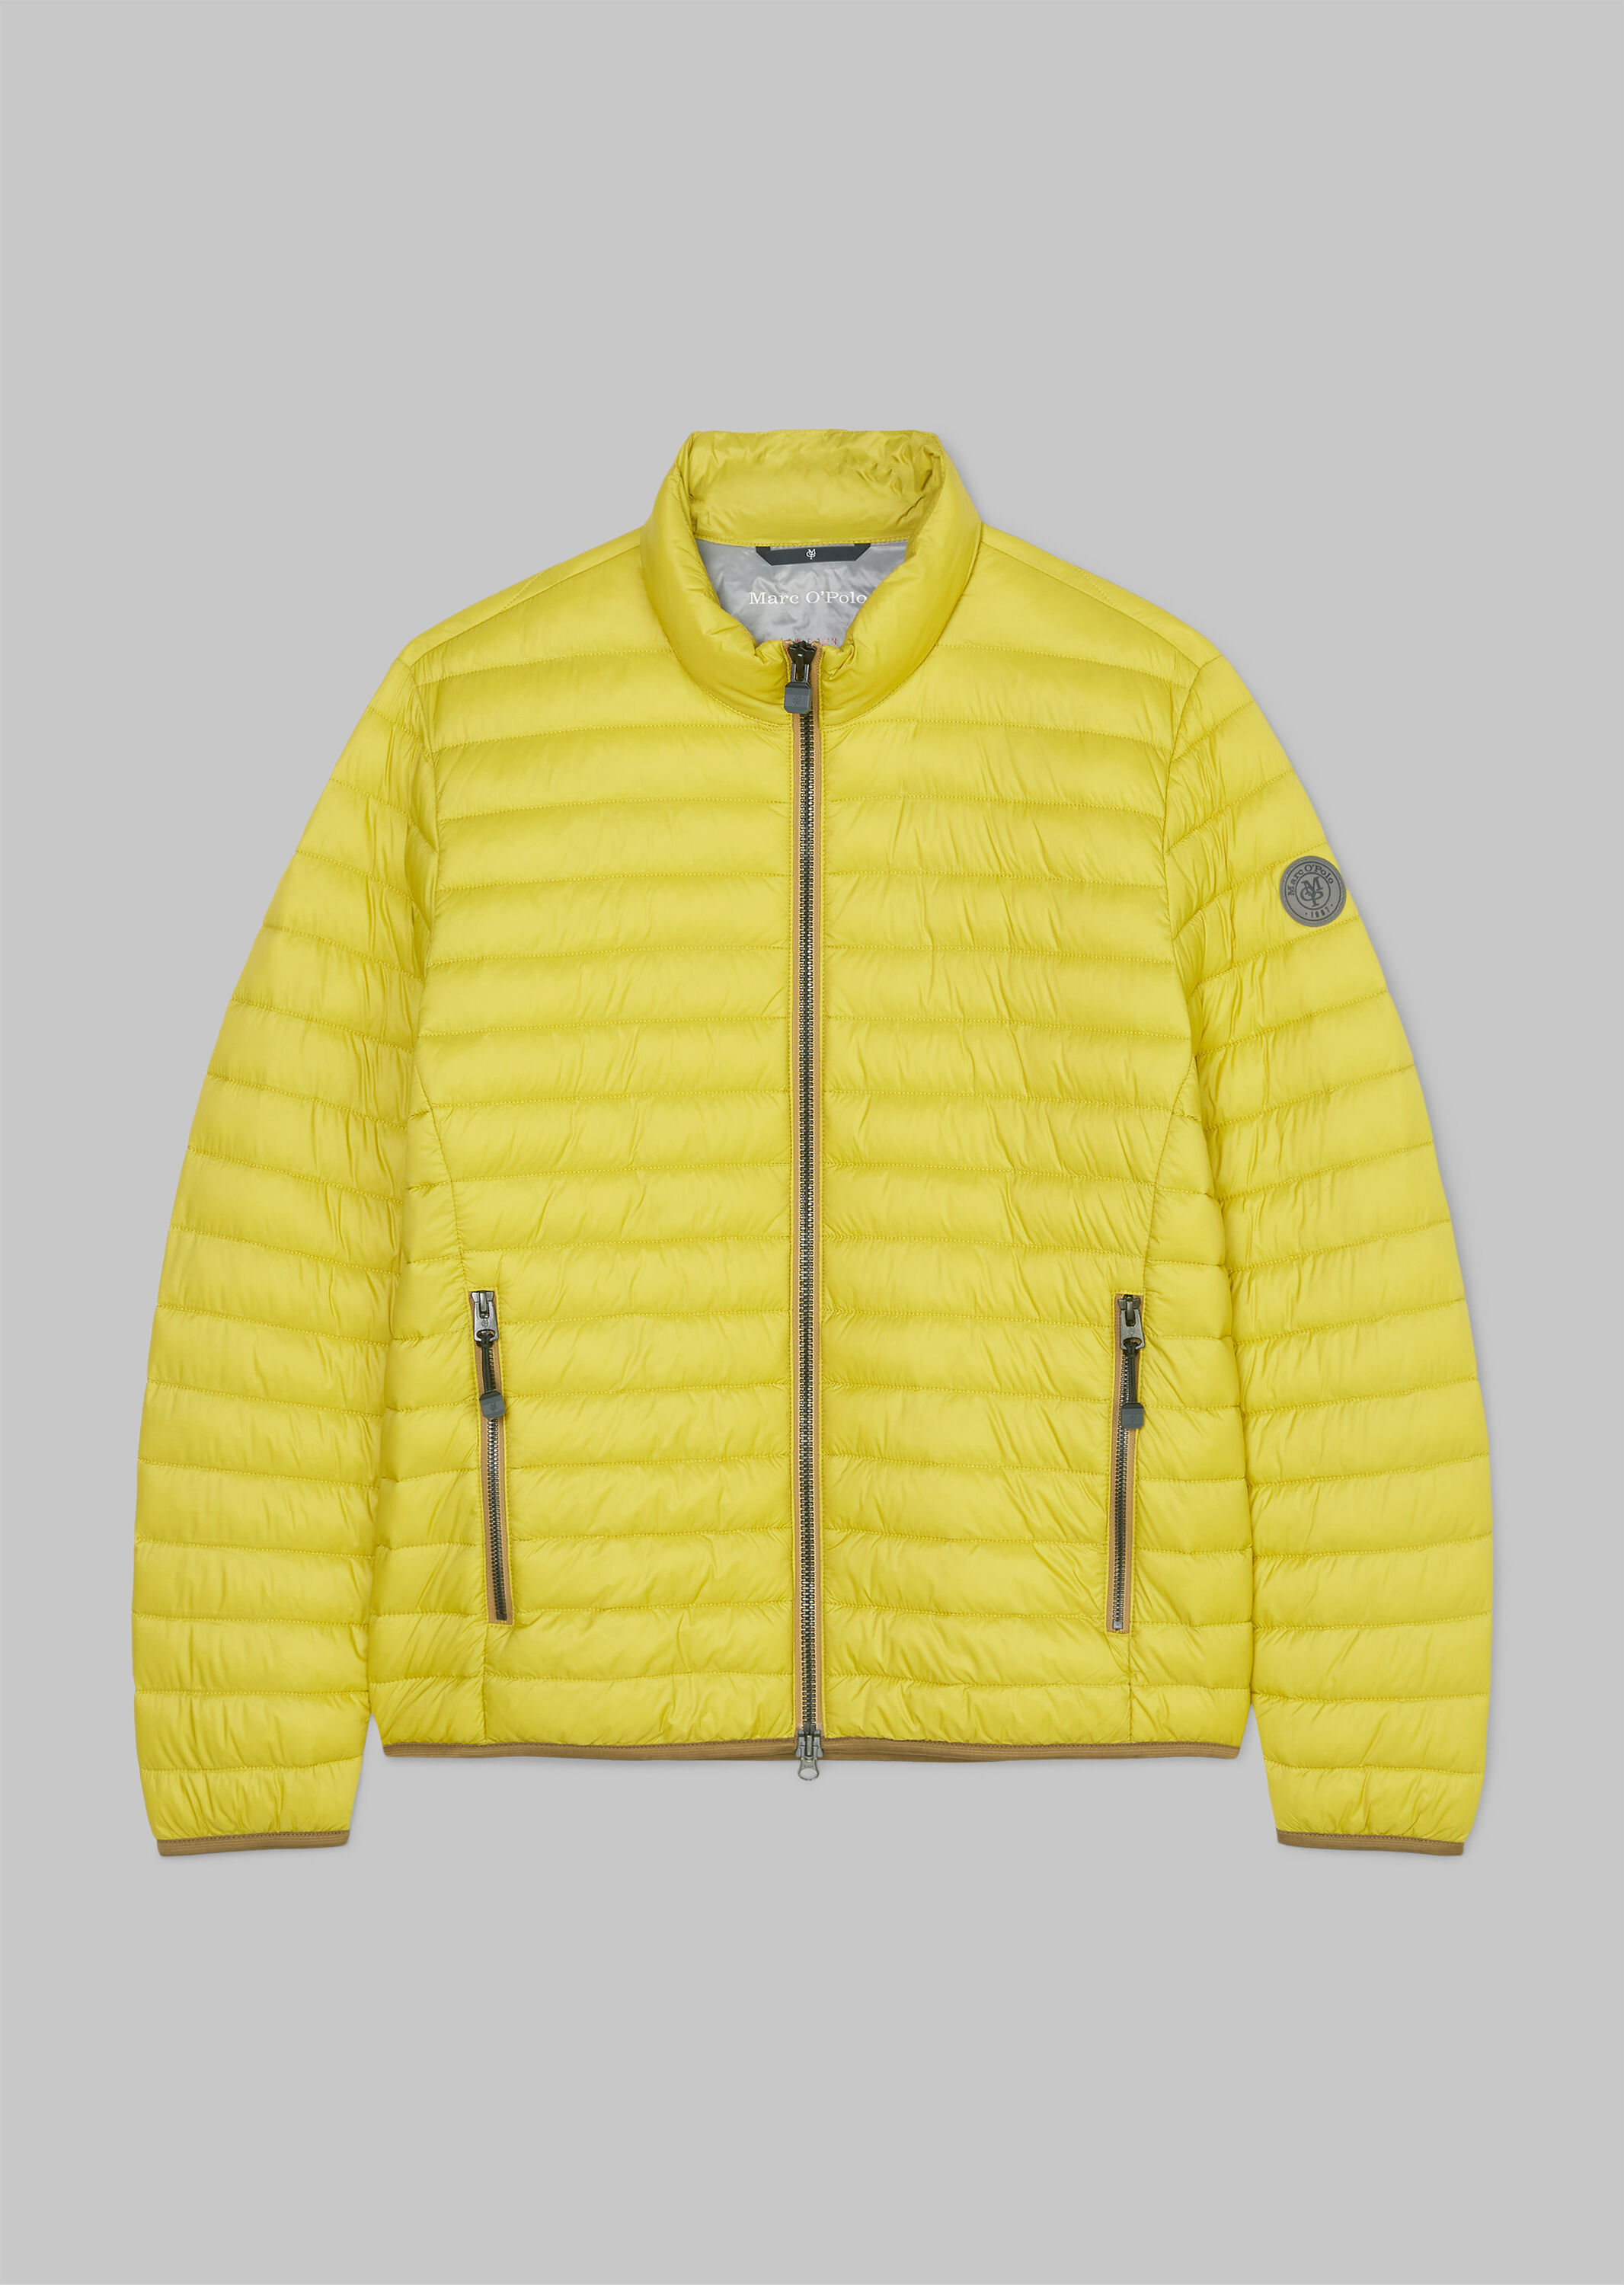 Jacket, regular fit, sorona fiber f